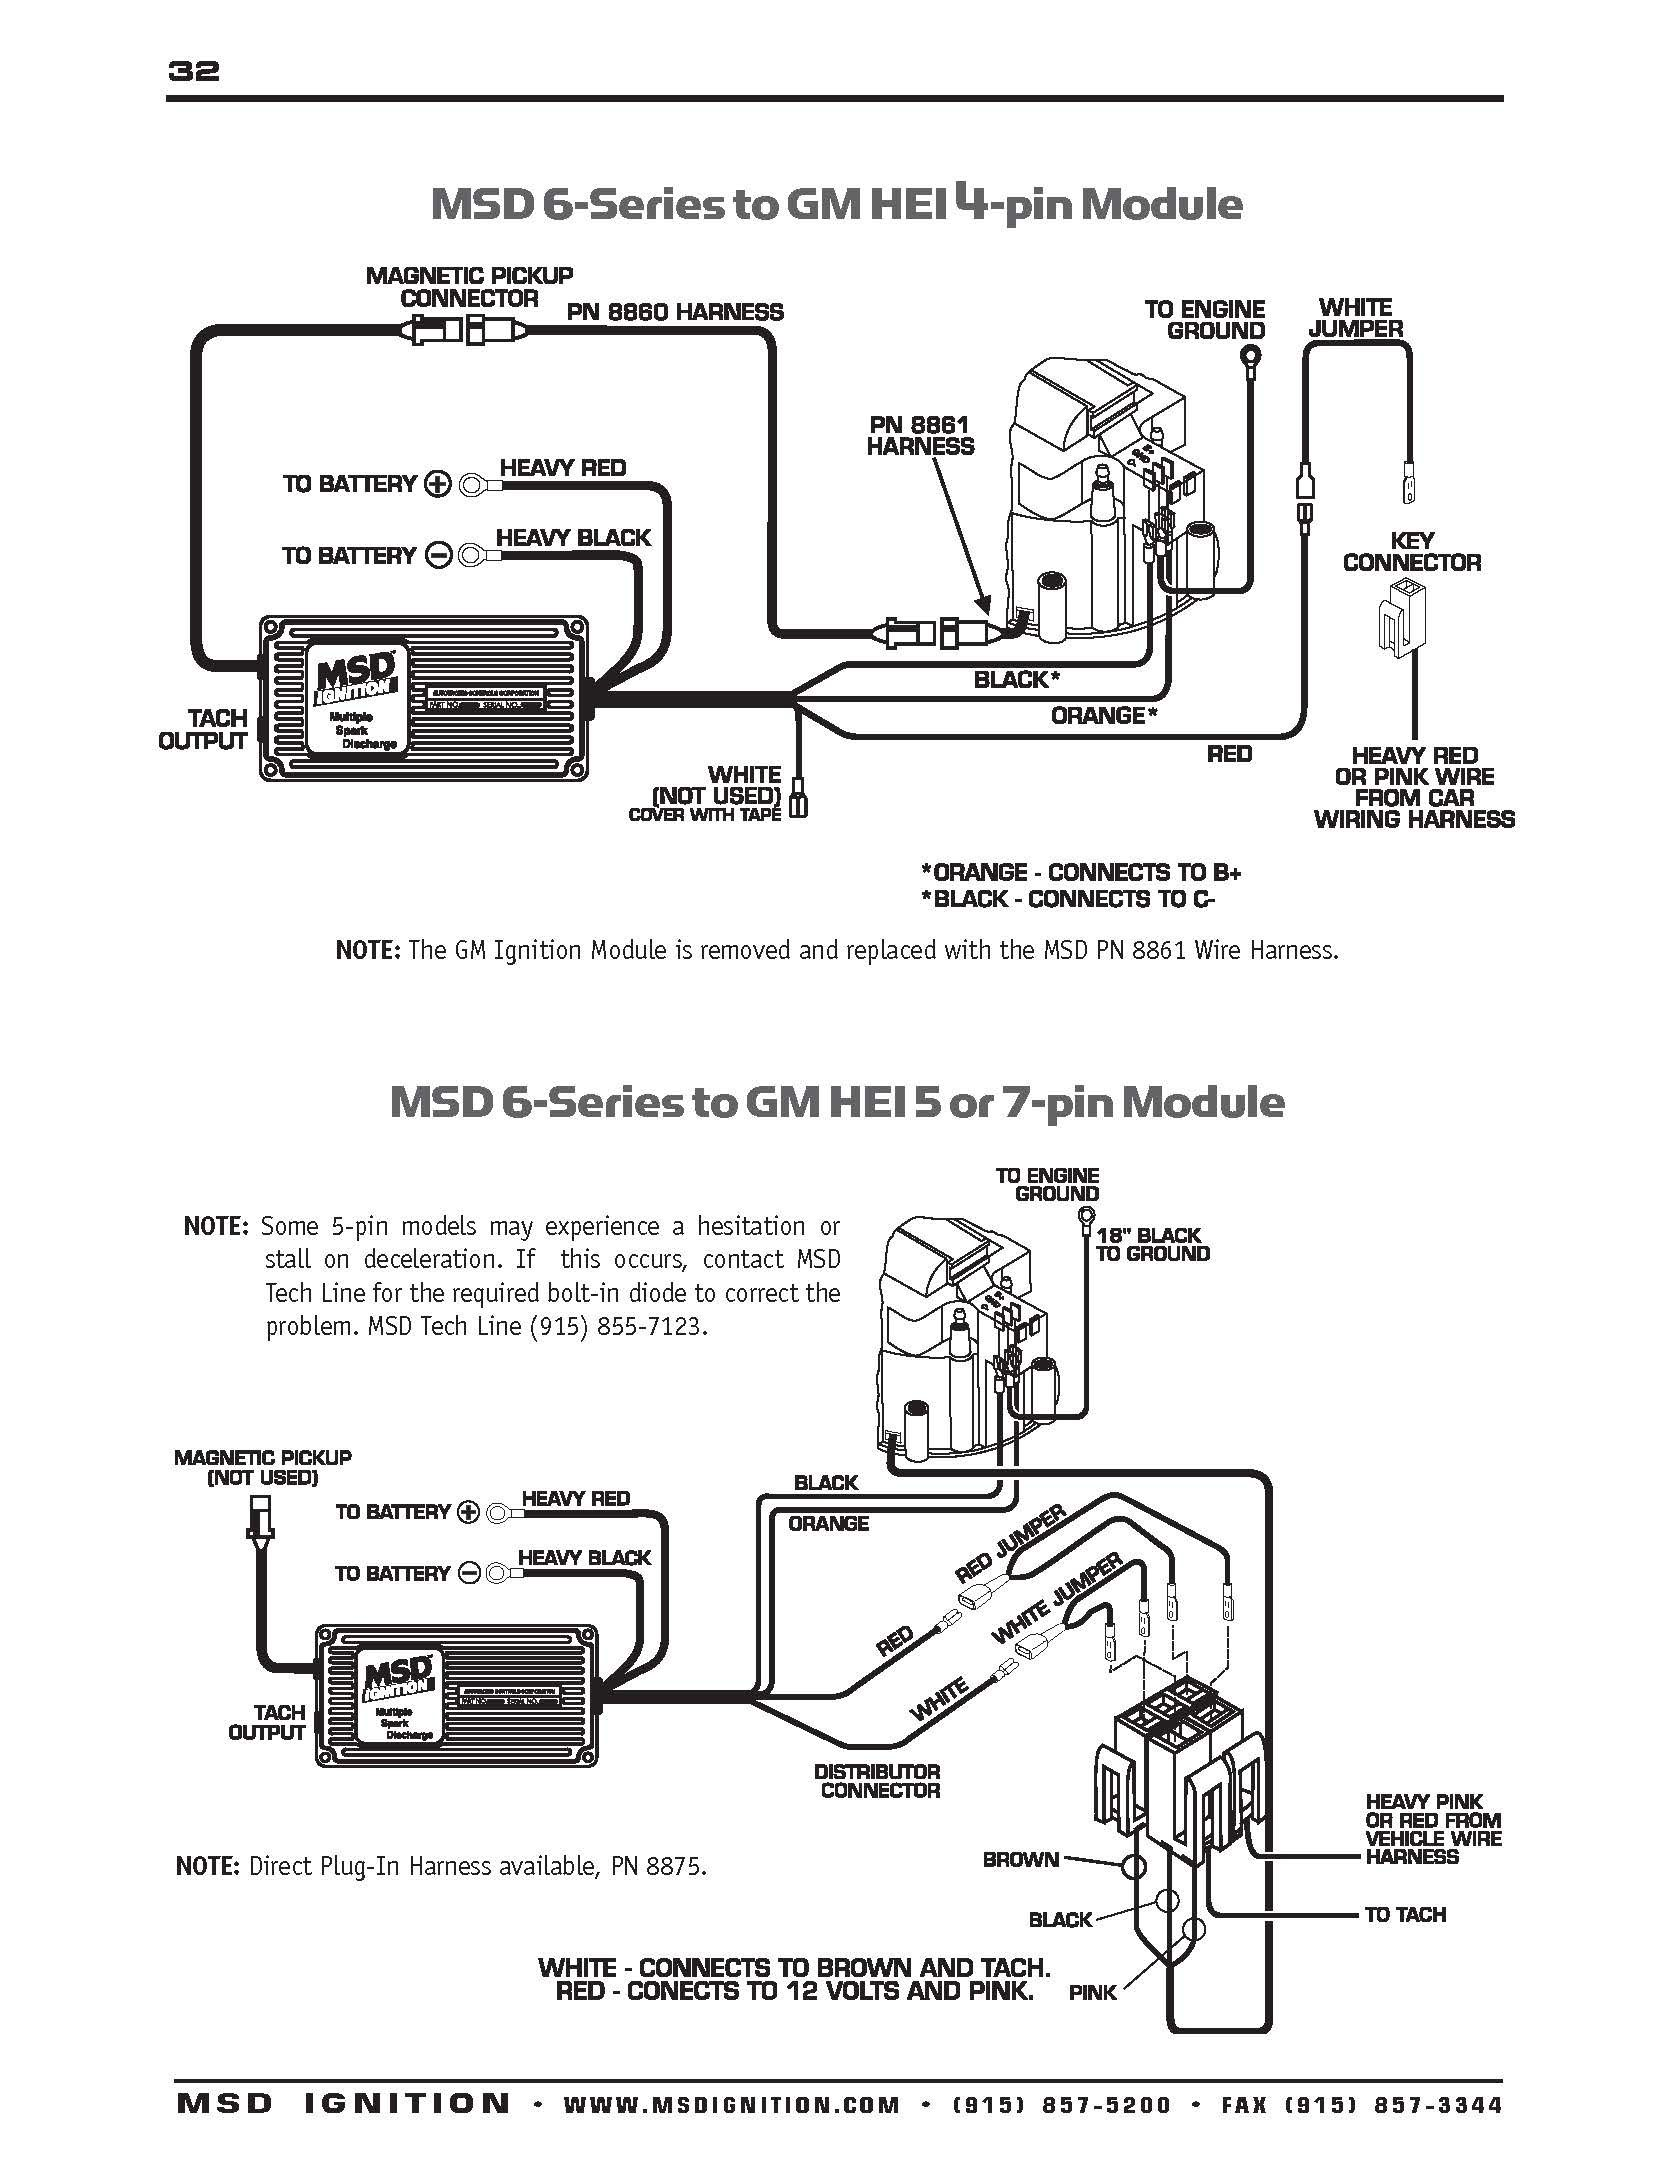 medium resolution of msd ignition wiring diagrams 1966 chevelle diagram automotive 66 chevelle ignition switch wiring diagram 1966 chevelle ignition wiring diagram